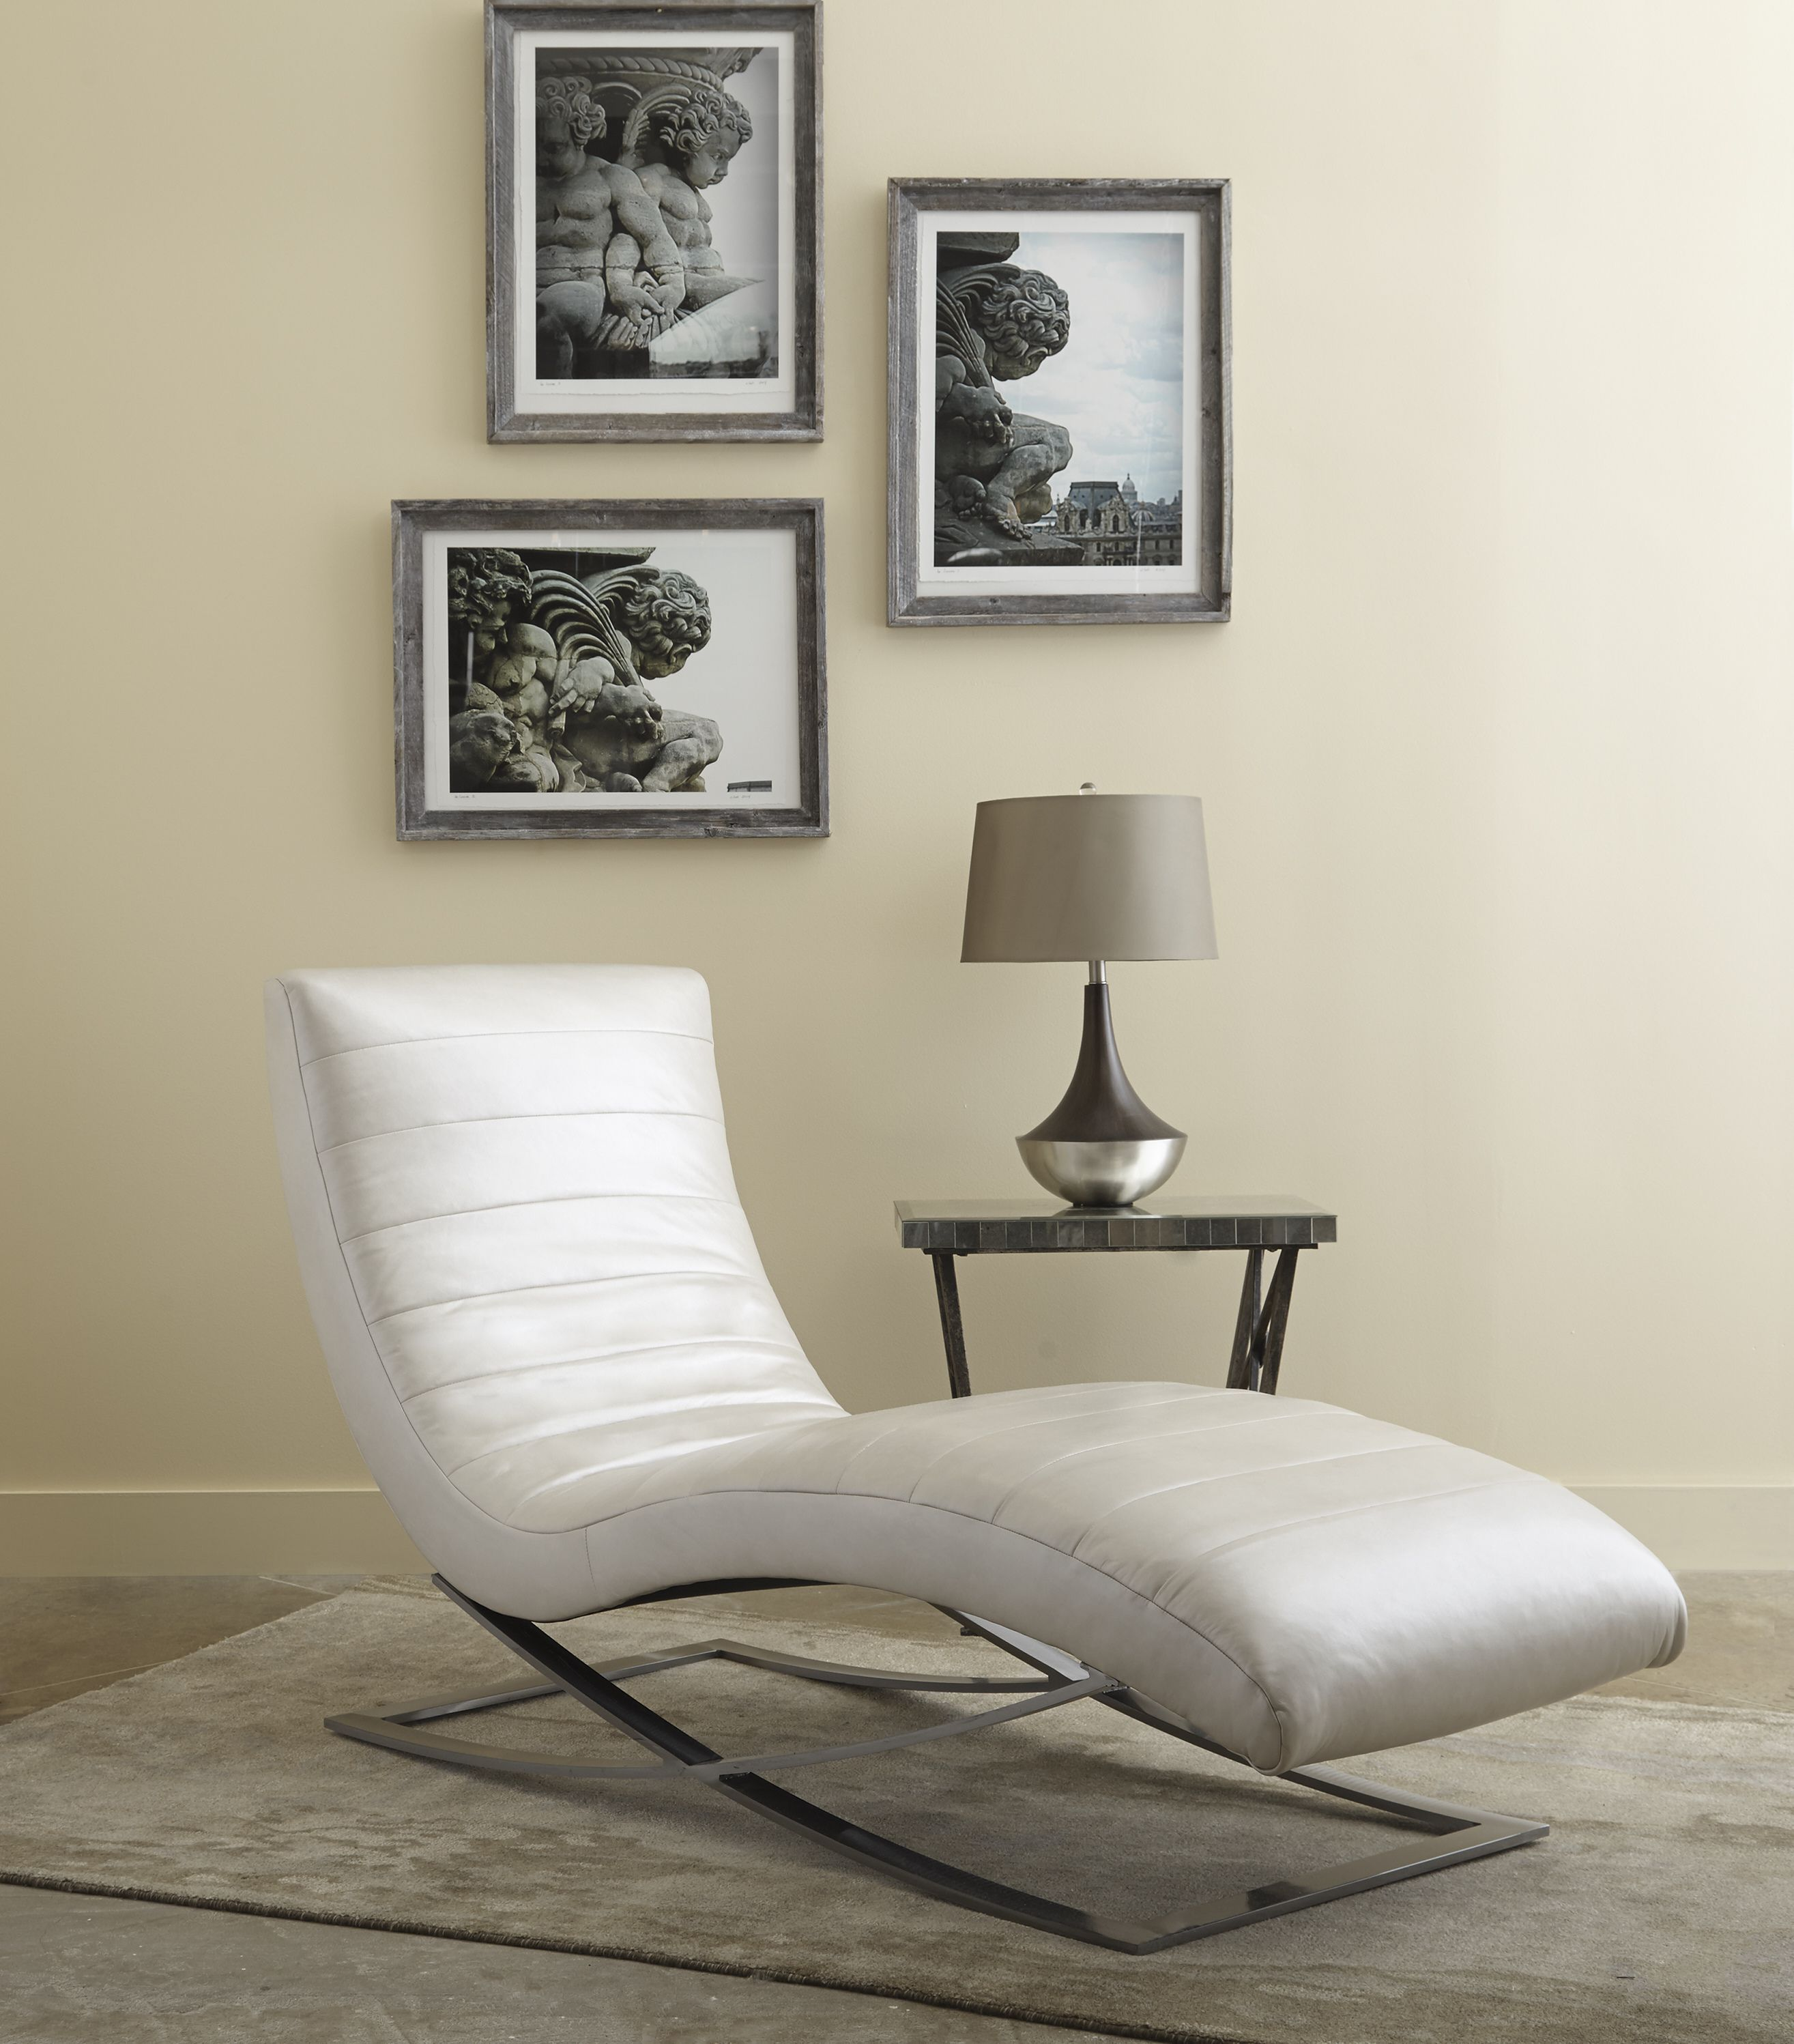 Norwalk Furnitureu0027s Harlow Chaise Is A Comfortable And Modern Chair On A  Sleek Metal Frame.